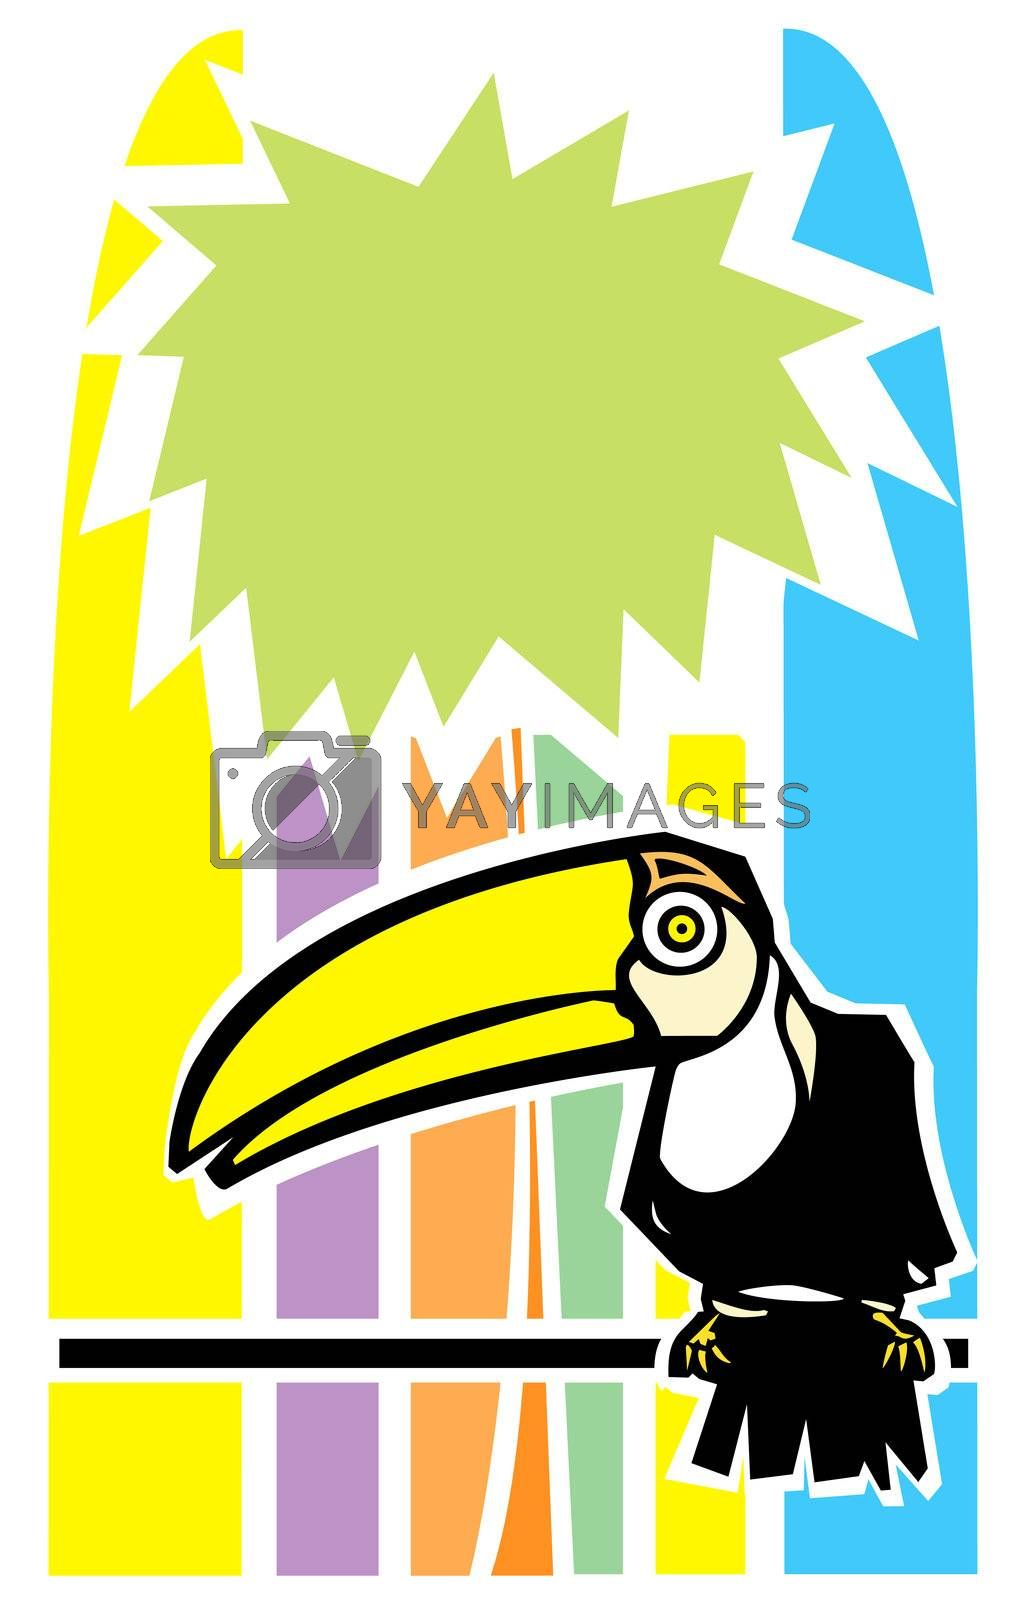 Tropical toucan bird with stylized palm tree in background.